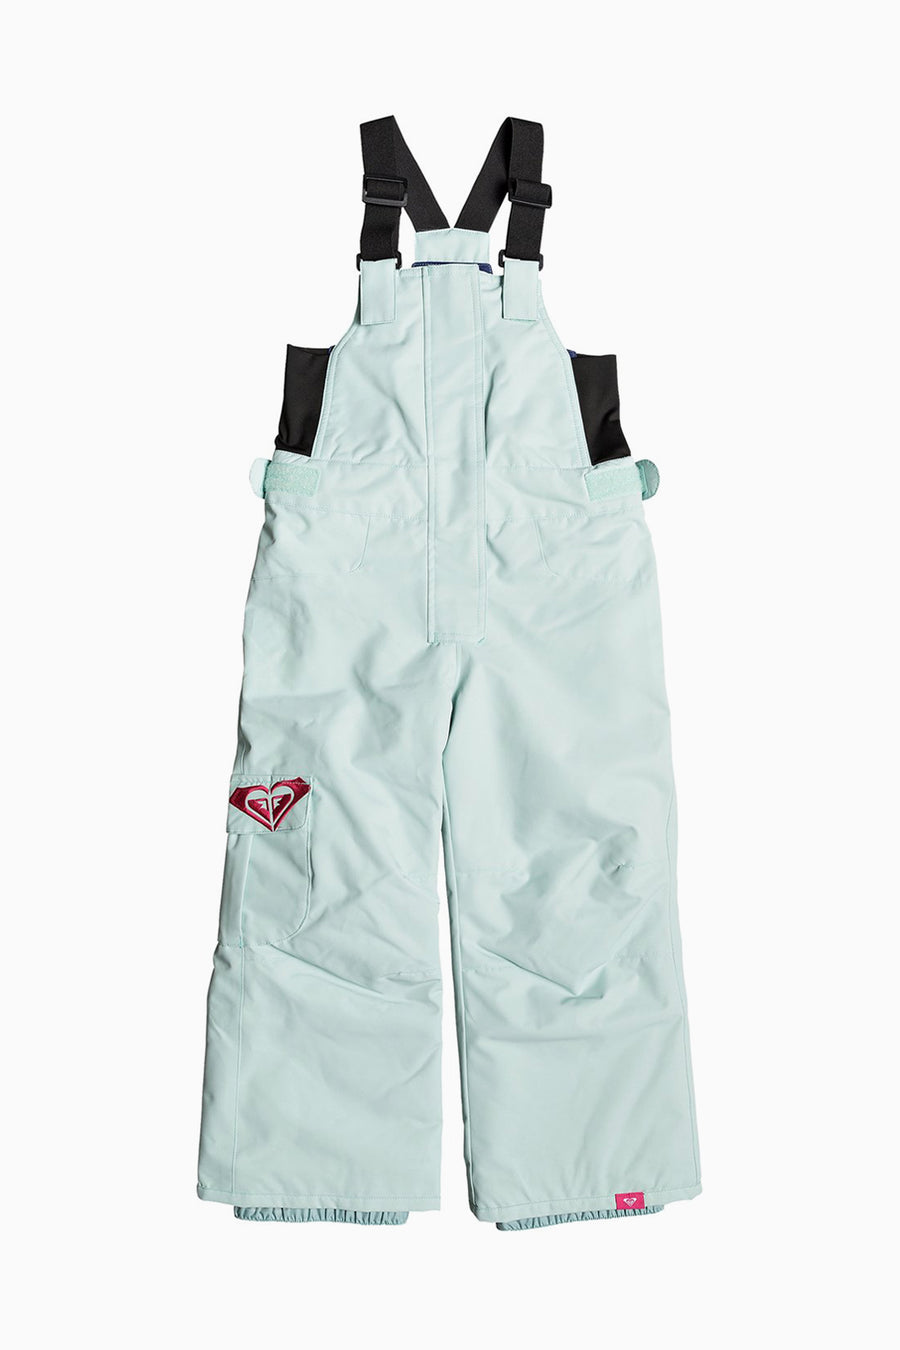 Roxy Lola Bib Snow Pants - Harbor Gray